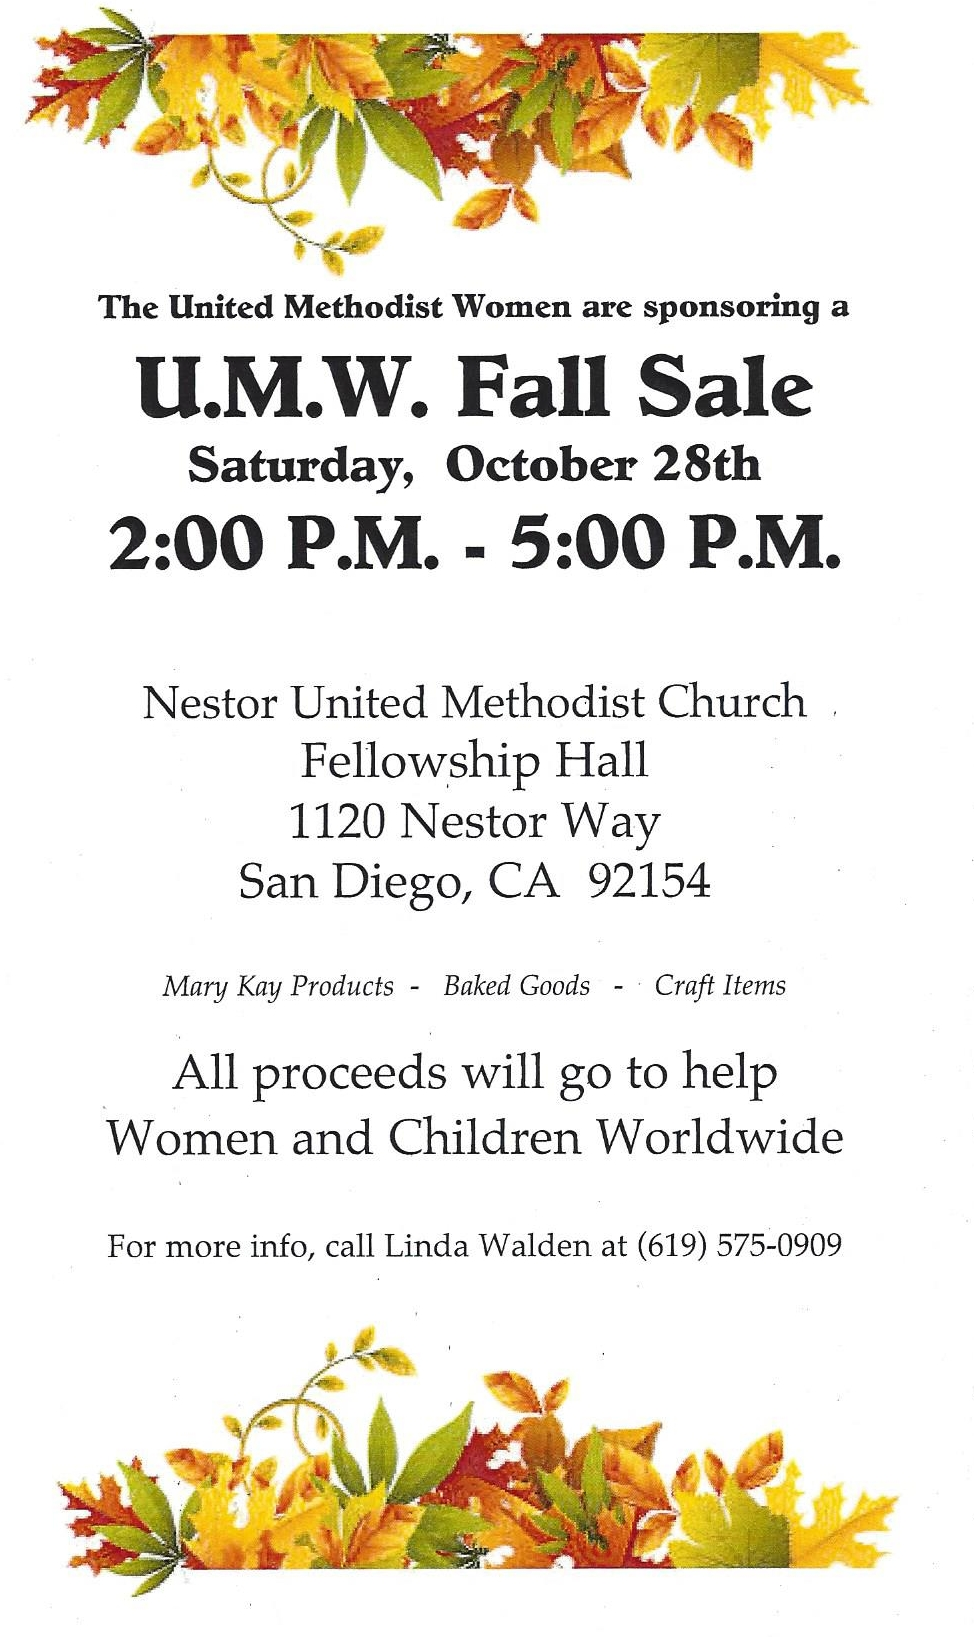 UMW Fall Sale Flyer.jpg